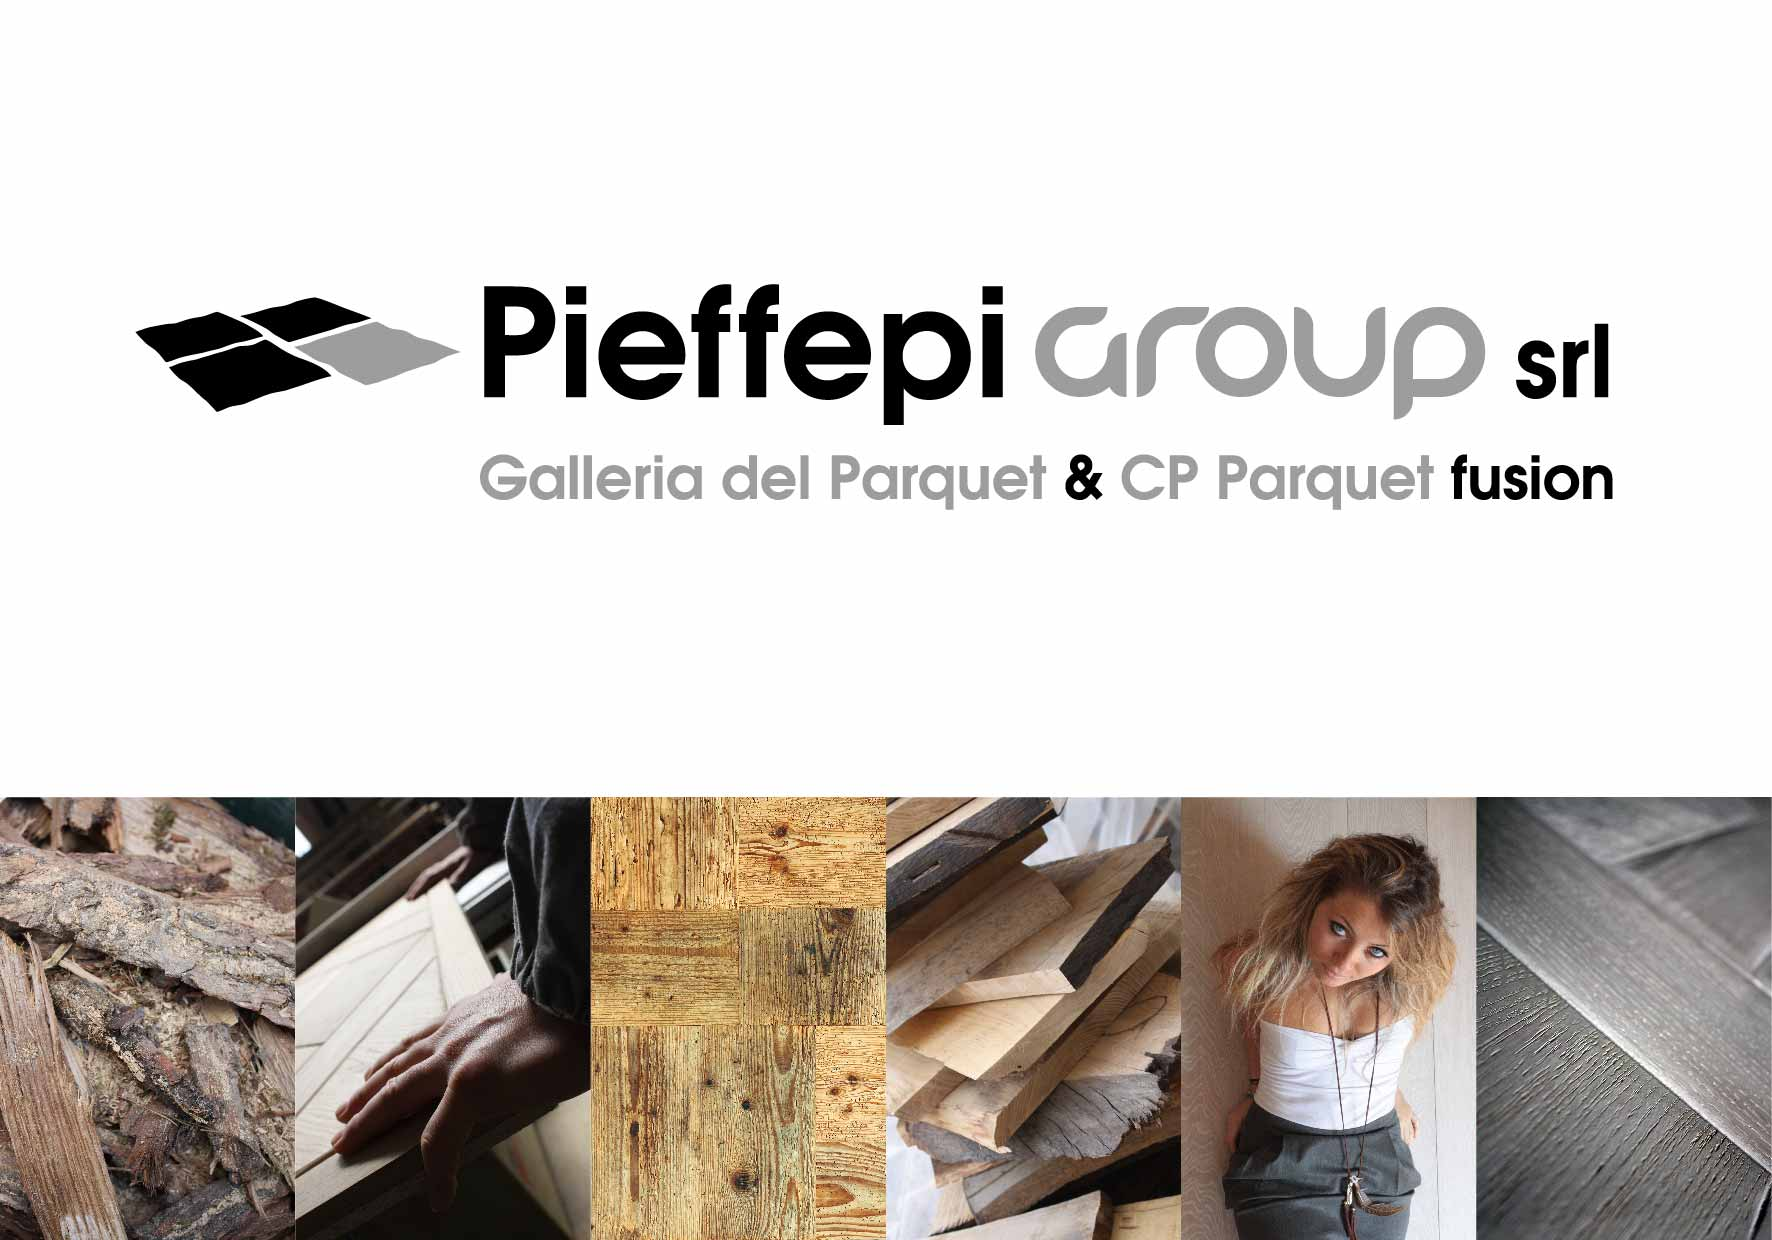 Pieffepi Group Srl